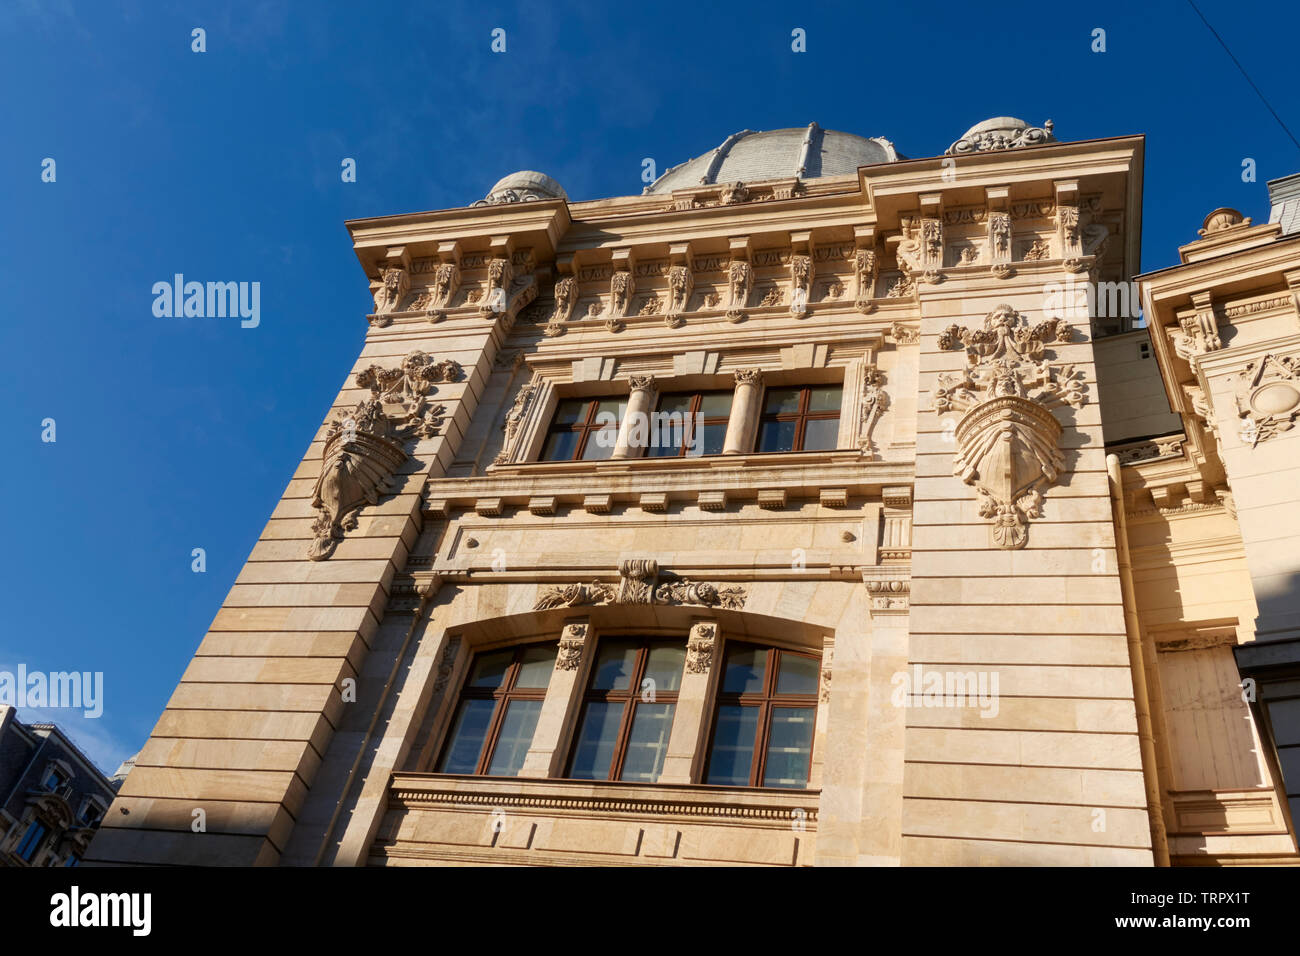 The National Museum Of Romanian History Bucharest Romania Stock Photo Alamy